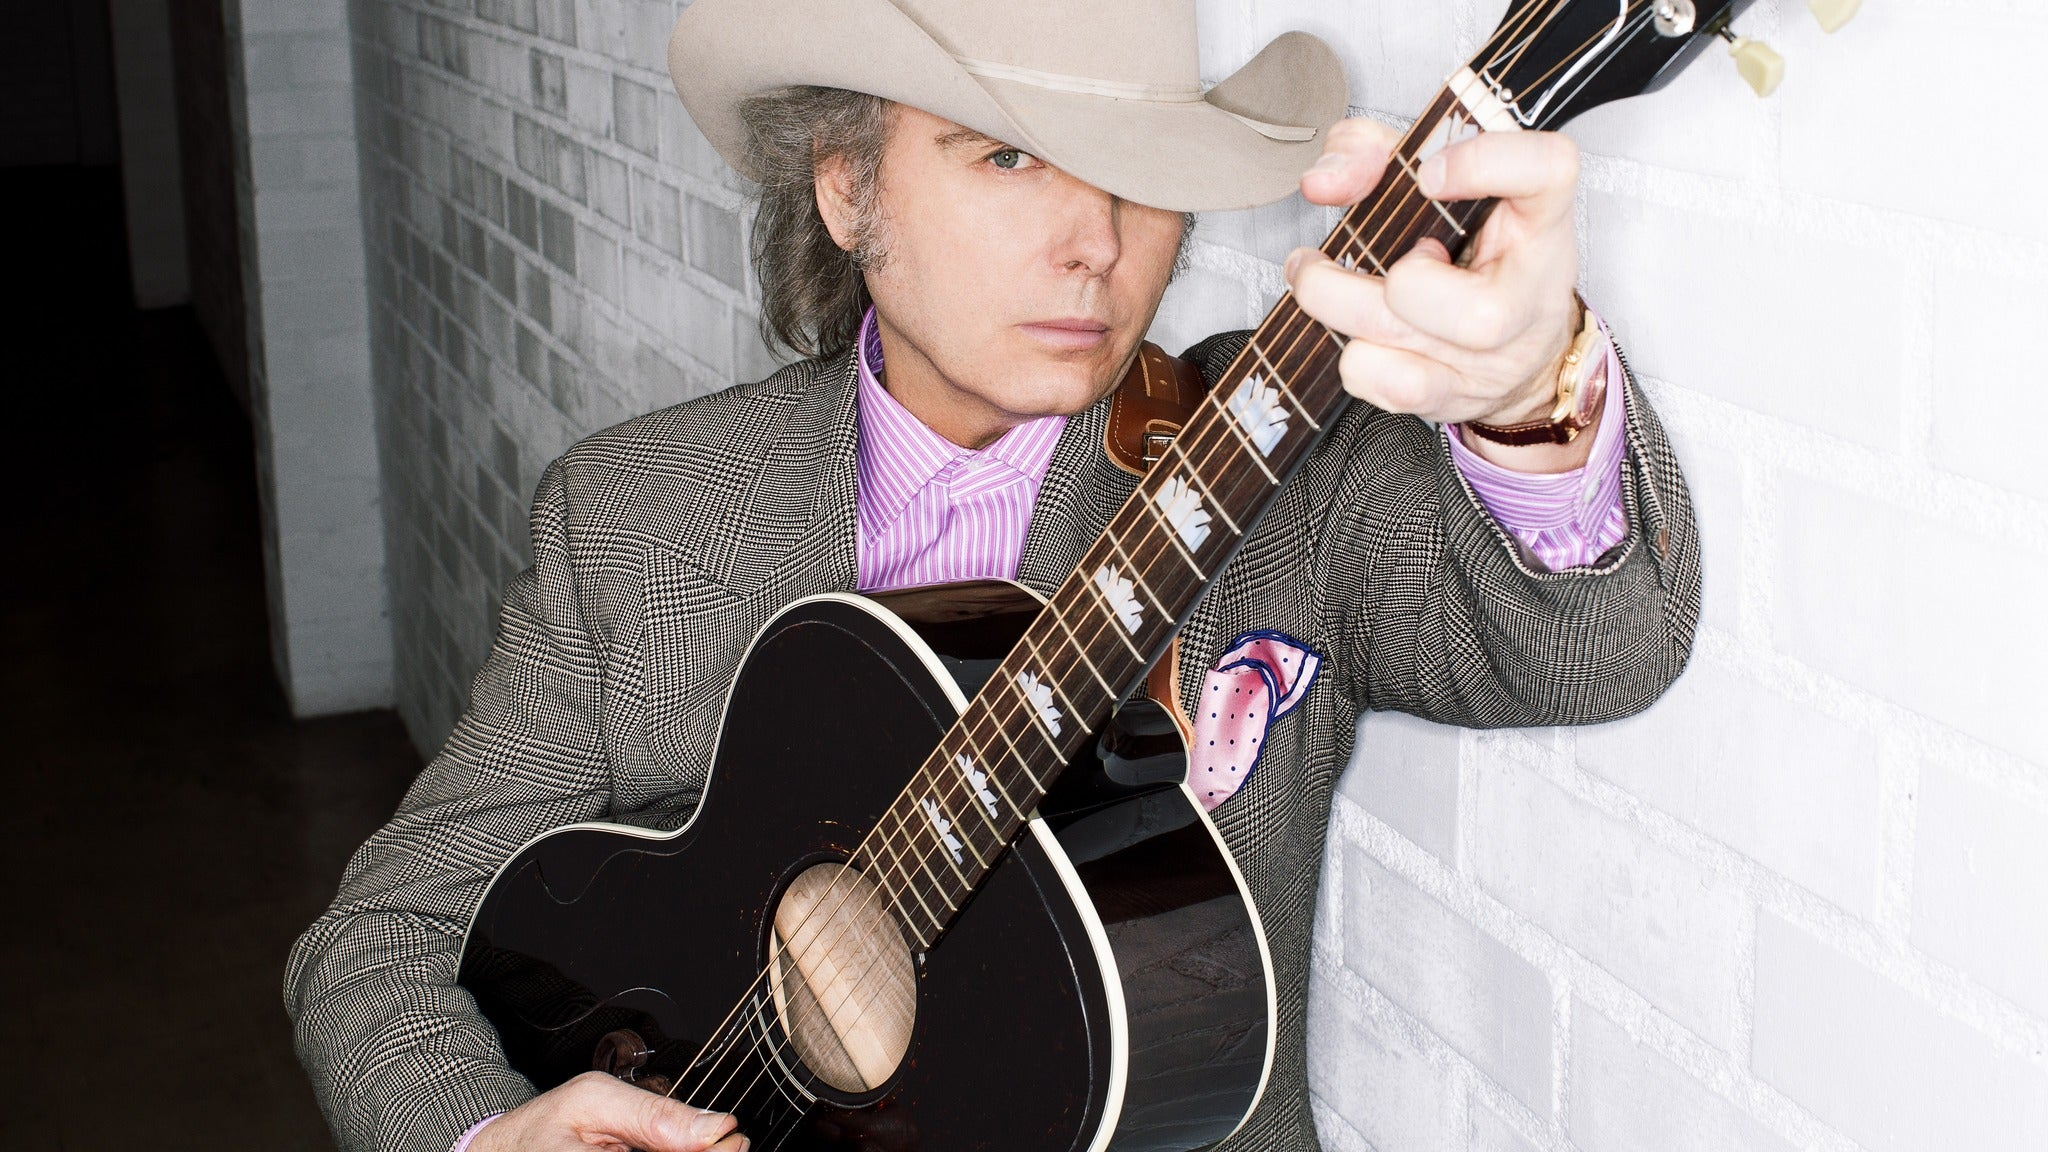 Dwight Yoakam at Anselmo Valencia Amphitheater